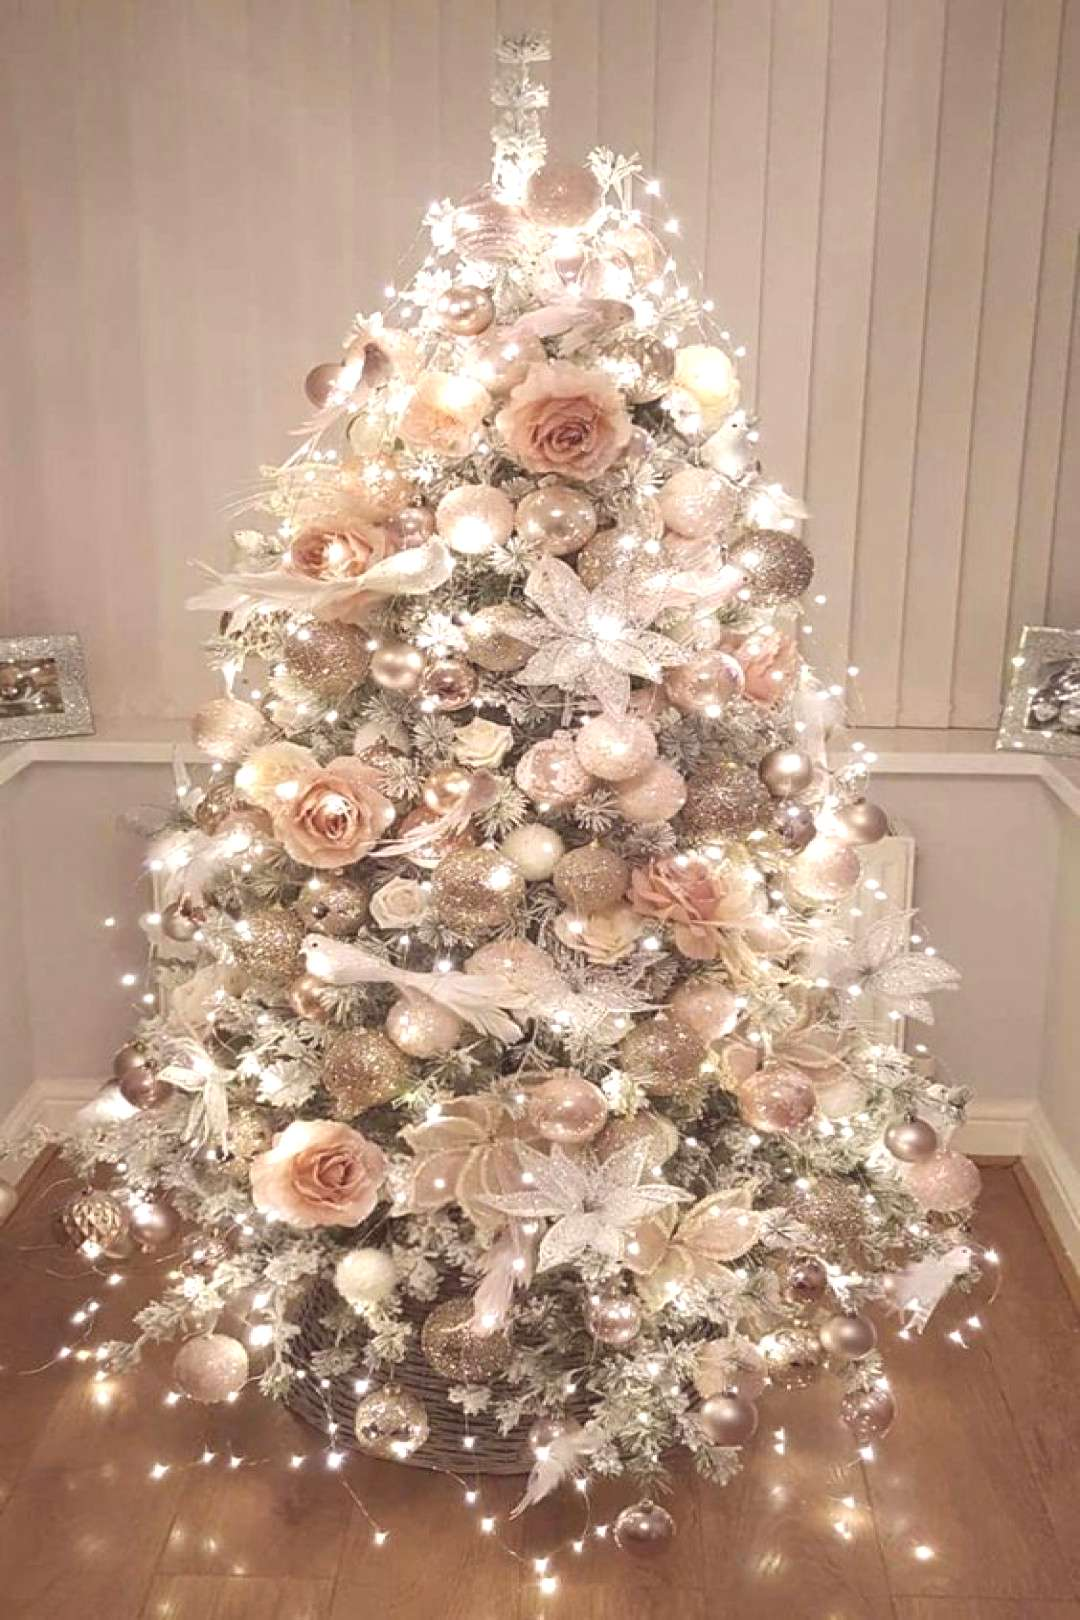 50 beautiful ideas to decorate your Christmas tree in different styles - -